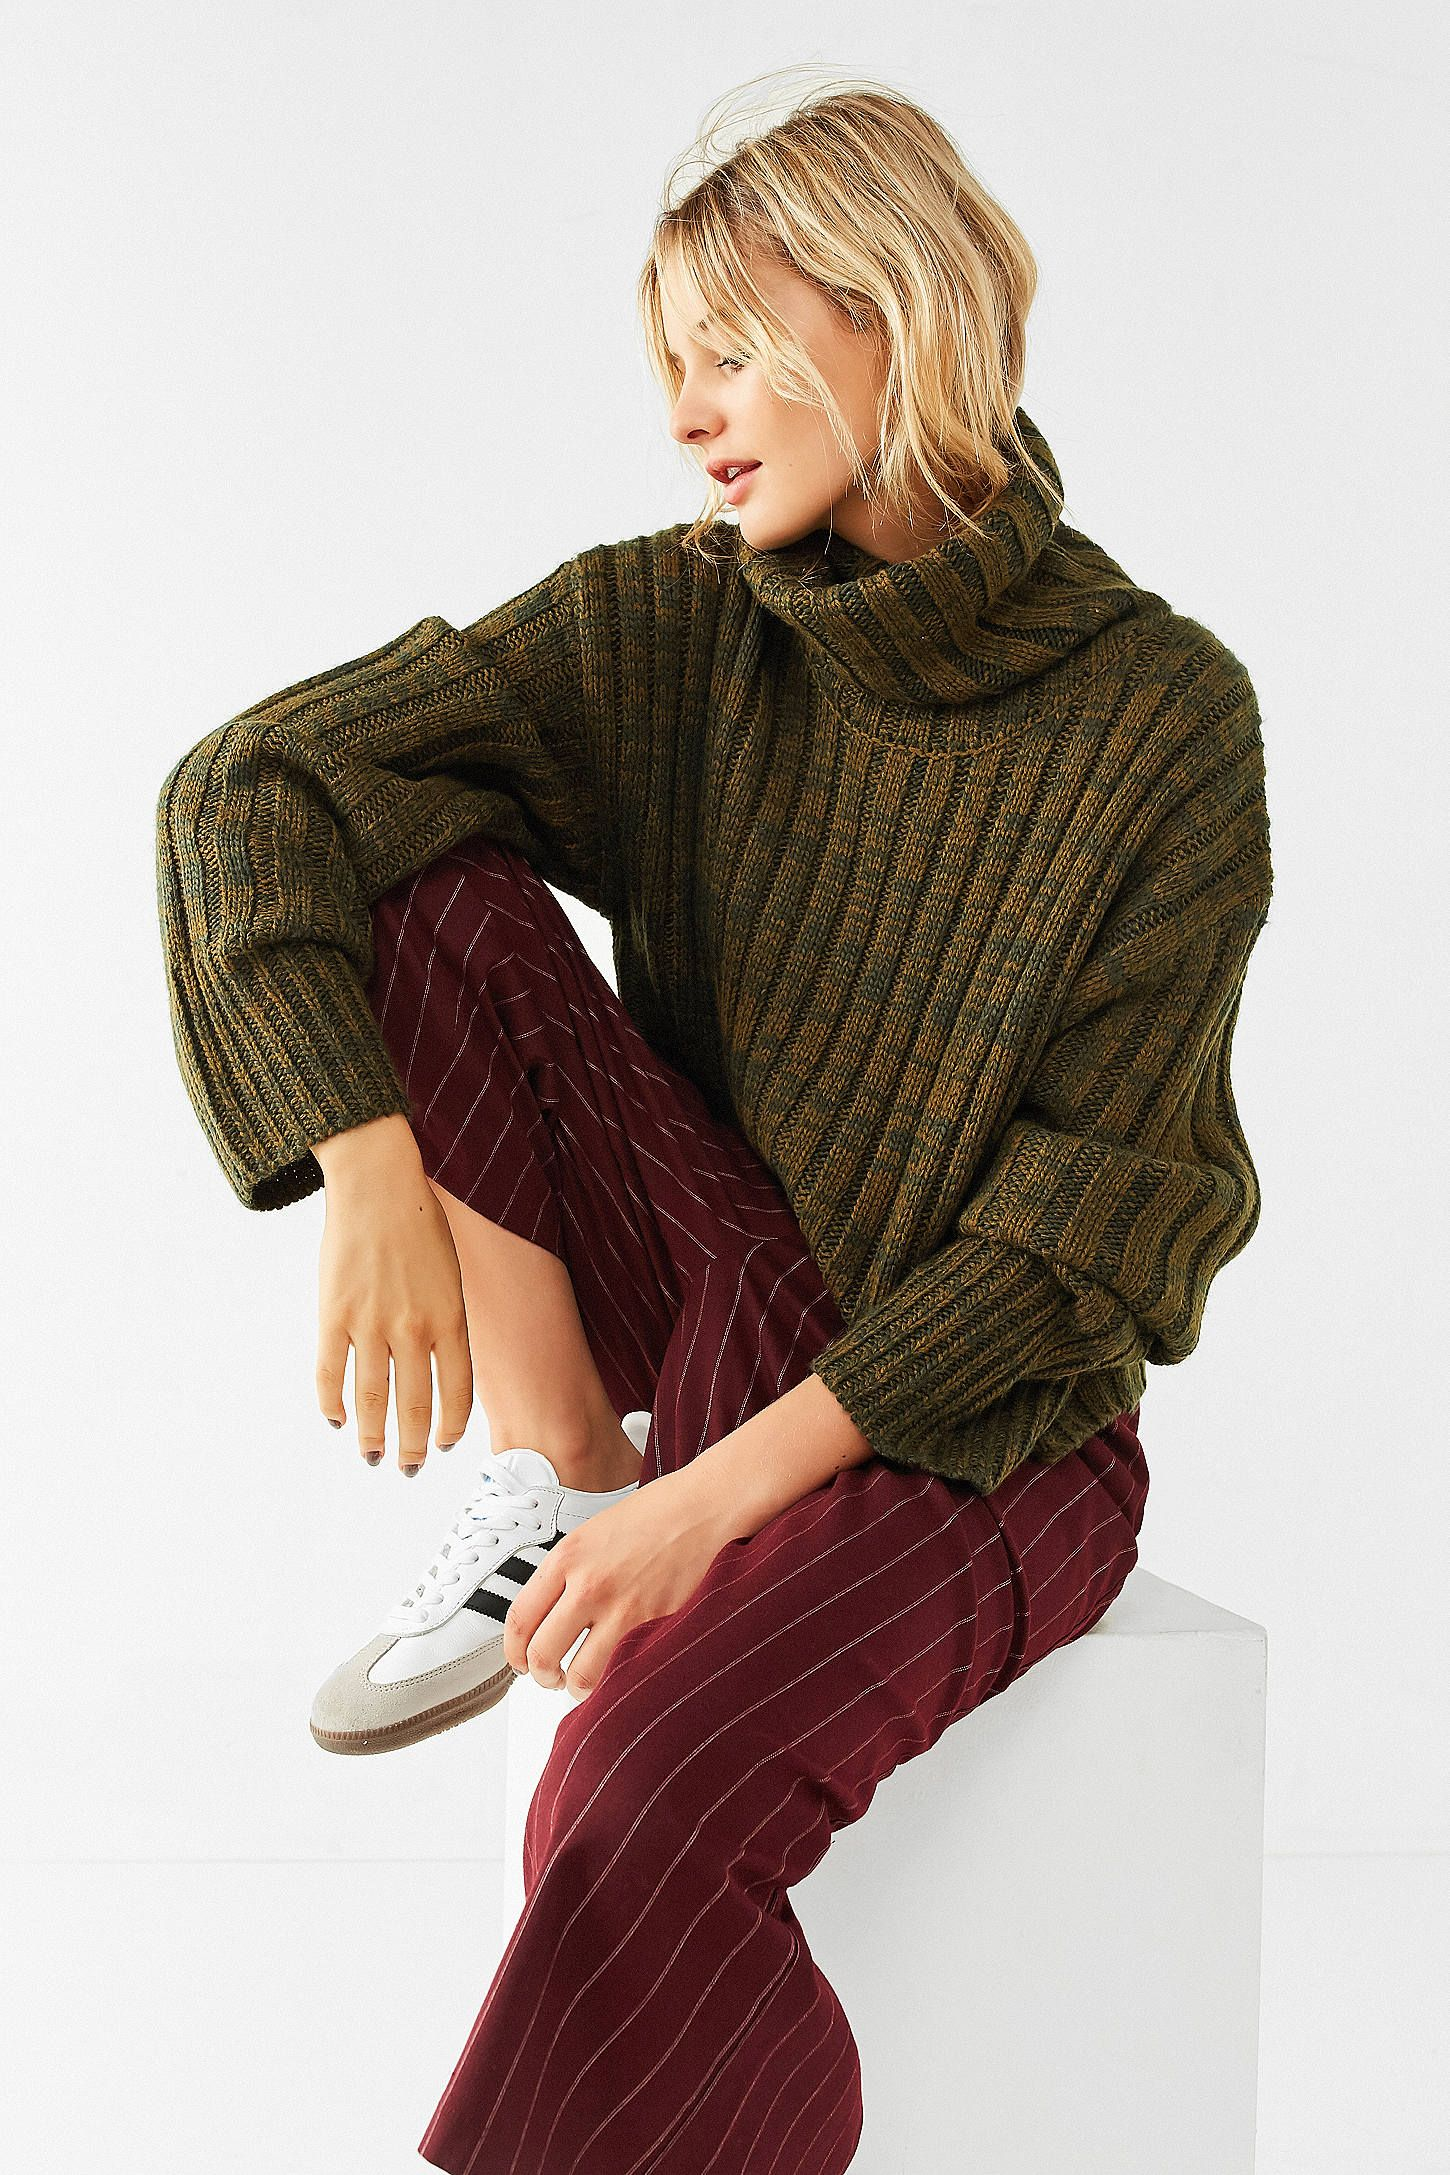 2ecb9899f Shop BDG Chunky Turtleneck Sweater at Urban Outfitters today. We ...